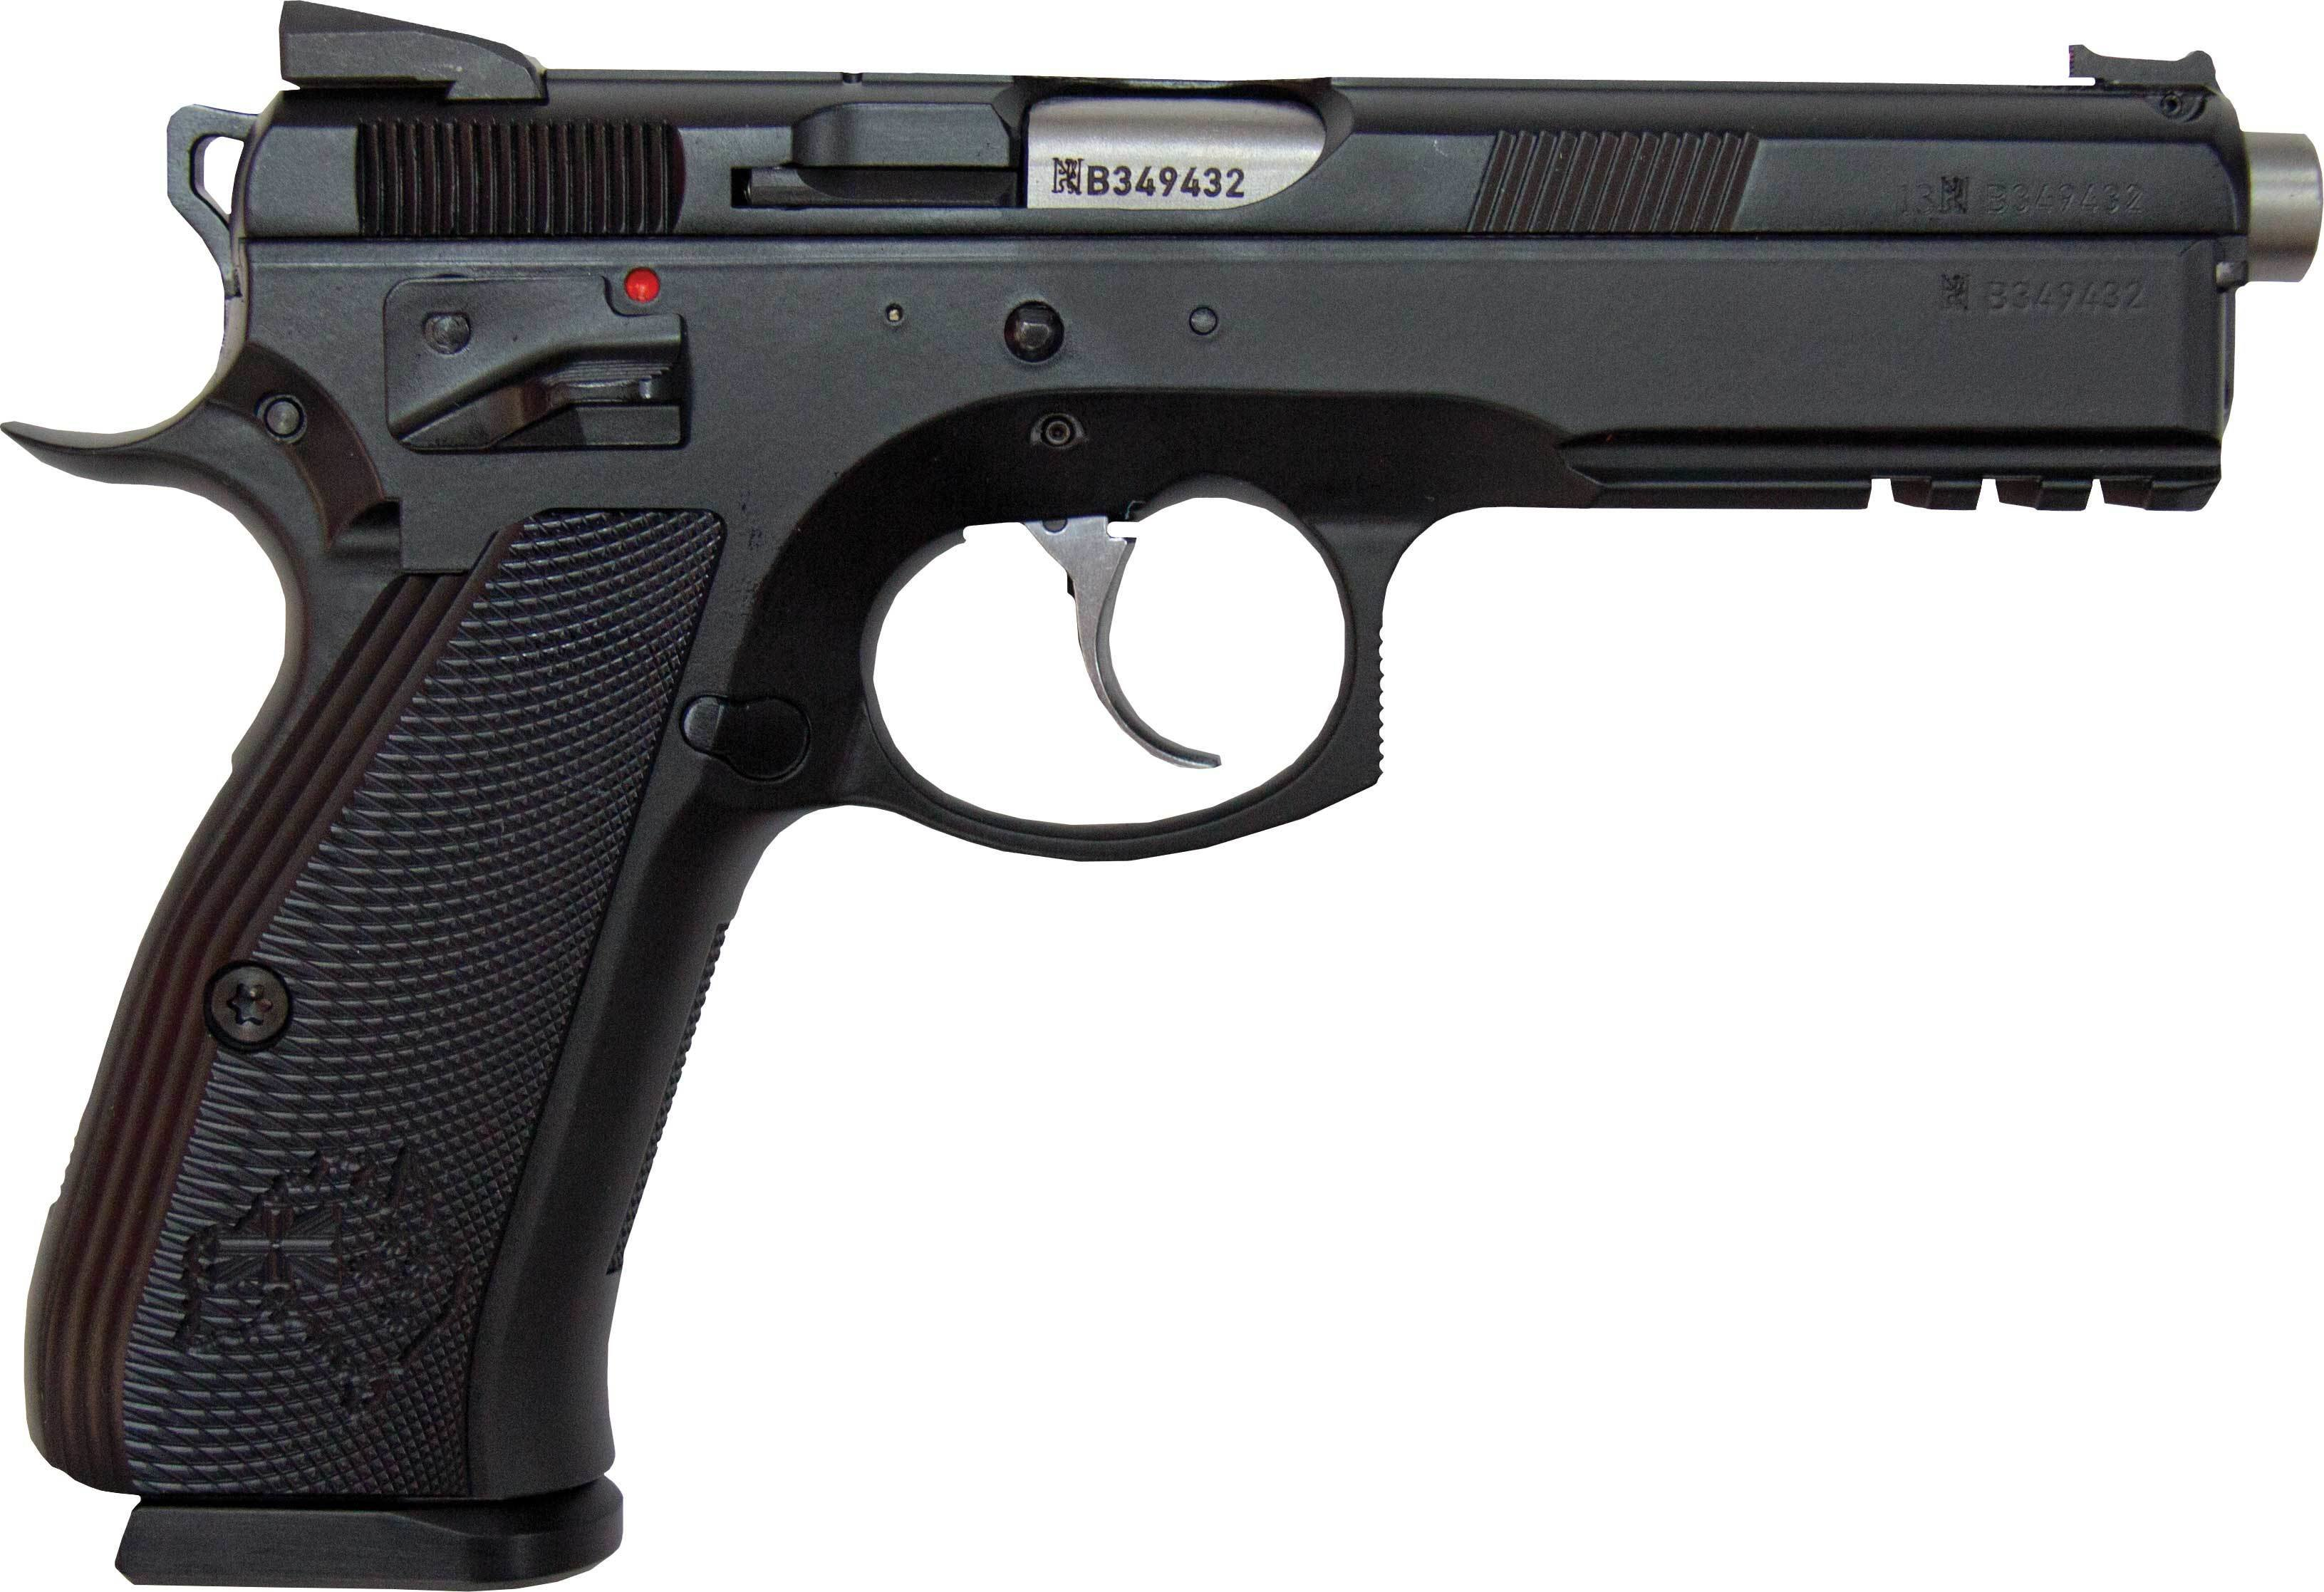 Pistola Semi automatica Modello 75SP-01 SHADOW 9X21 -  CZ 686